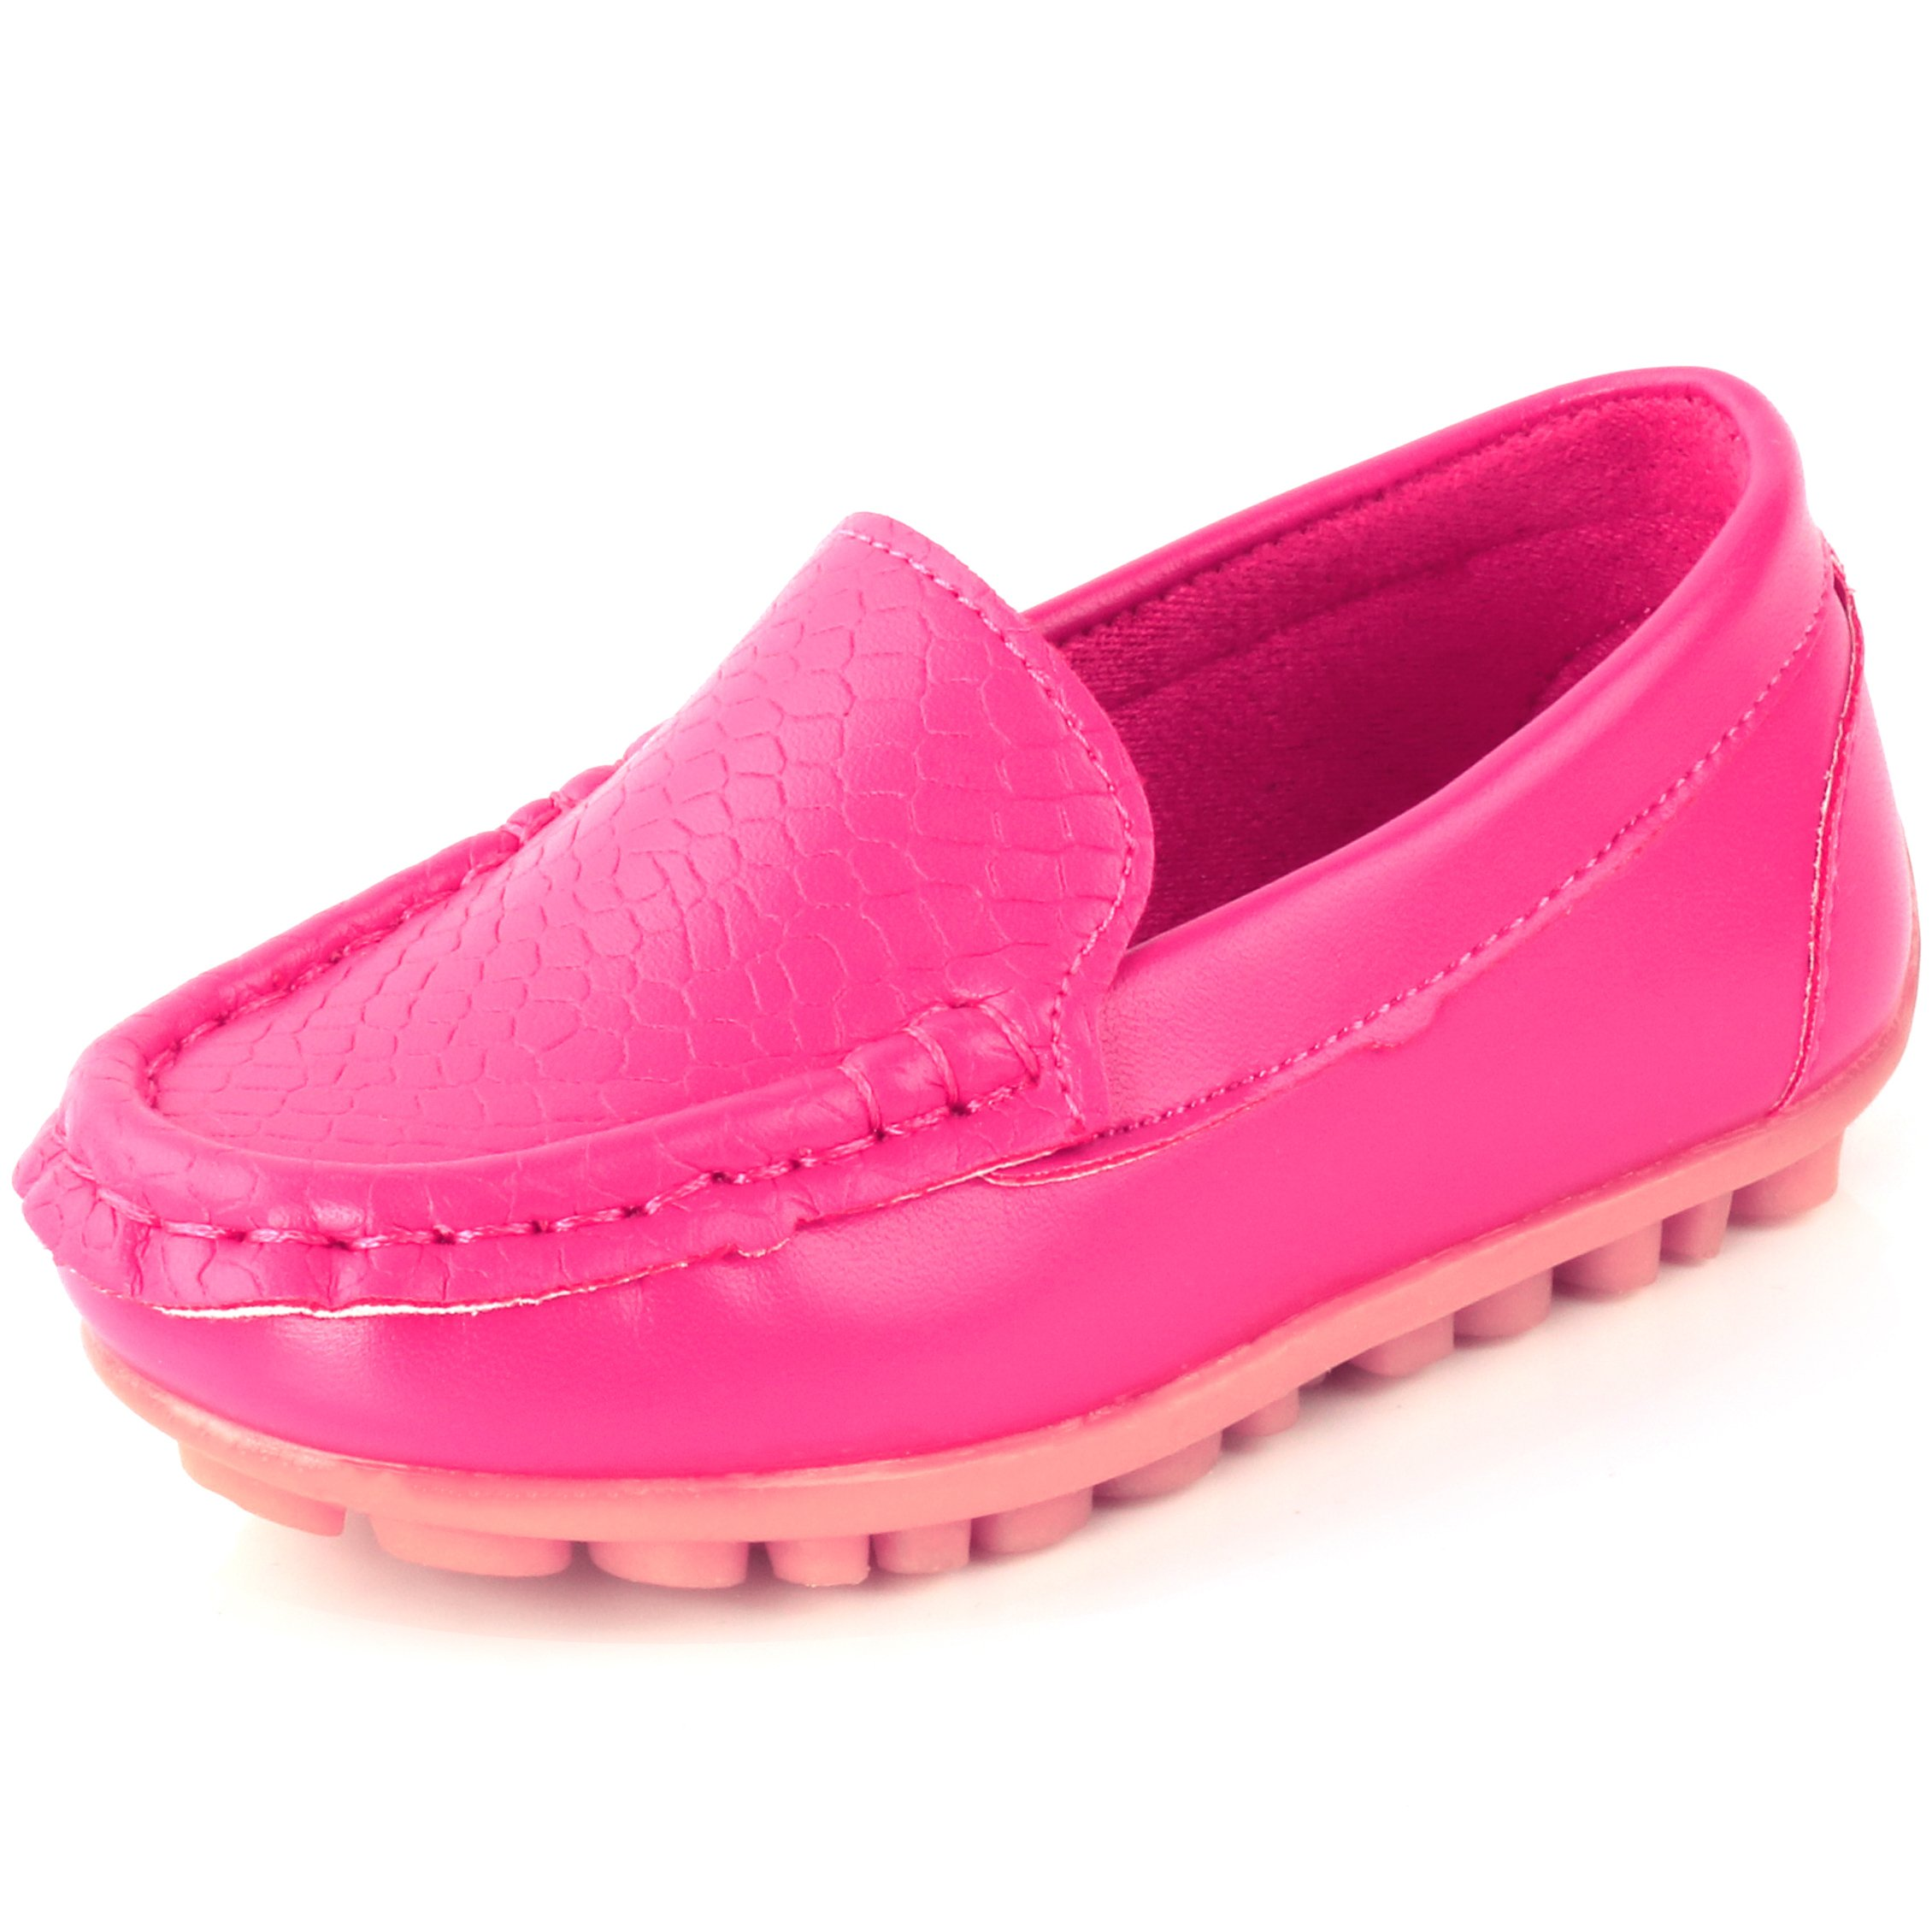 Femizee Toddler Boys Girls Loafers Shoes Casual Moccasin Slip On Dress Wedding Shoes for Kids,Hot Pink,1301 CN 29